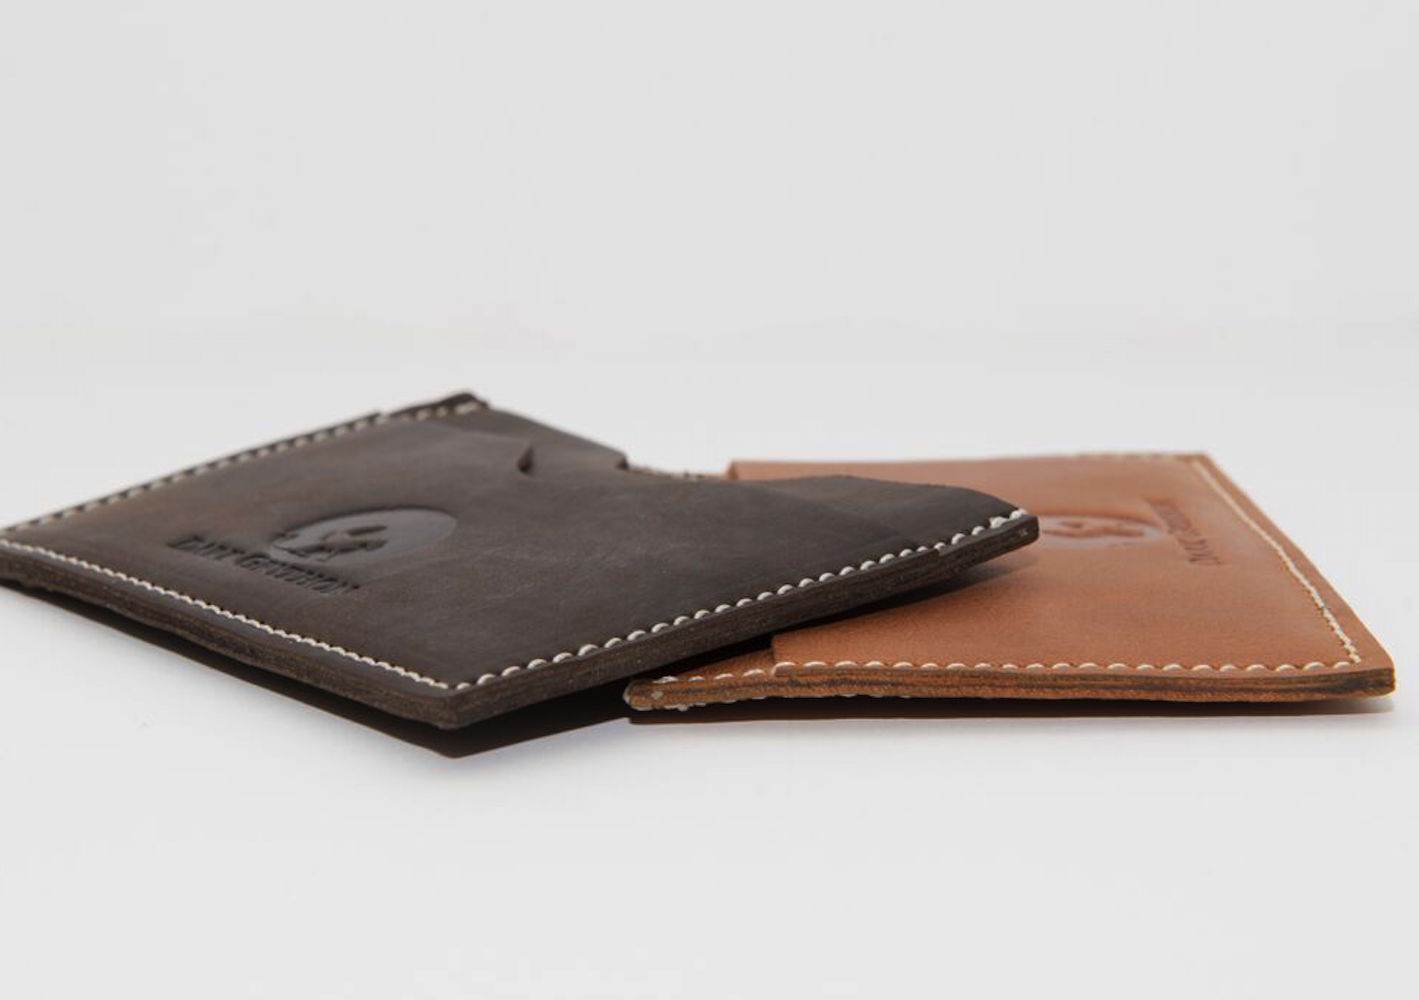 dark-gryphon-carbon-fiber-wallets-04